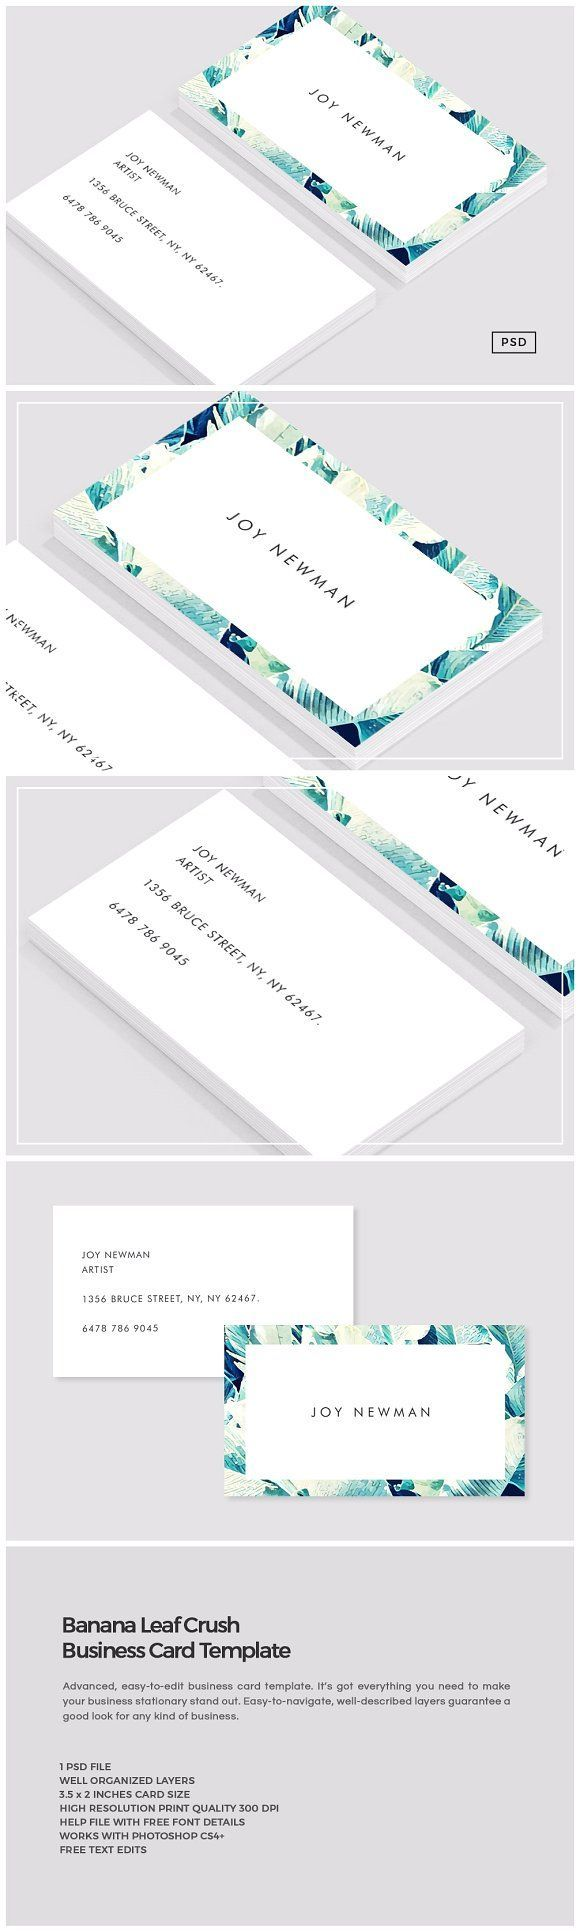 192 best business cards images on pinterest business cards banana leaf crush business card reheart Gallery